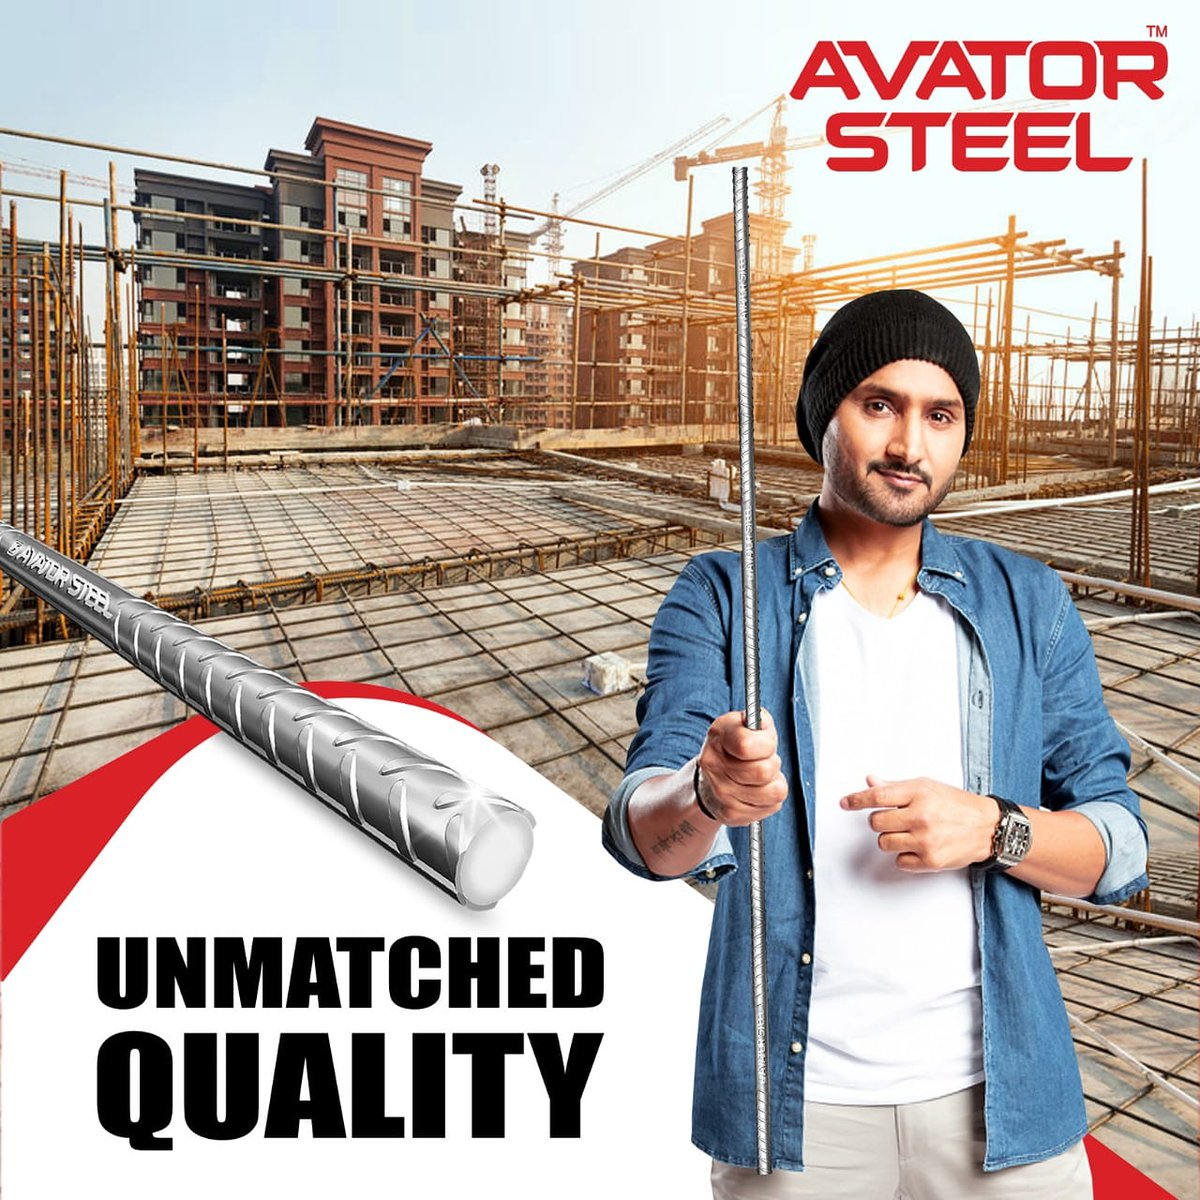 #AvatorSteel provides unparalleled strength to your dream home, protecting your family for years.   @harbhajan_singh